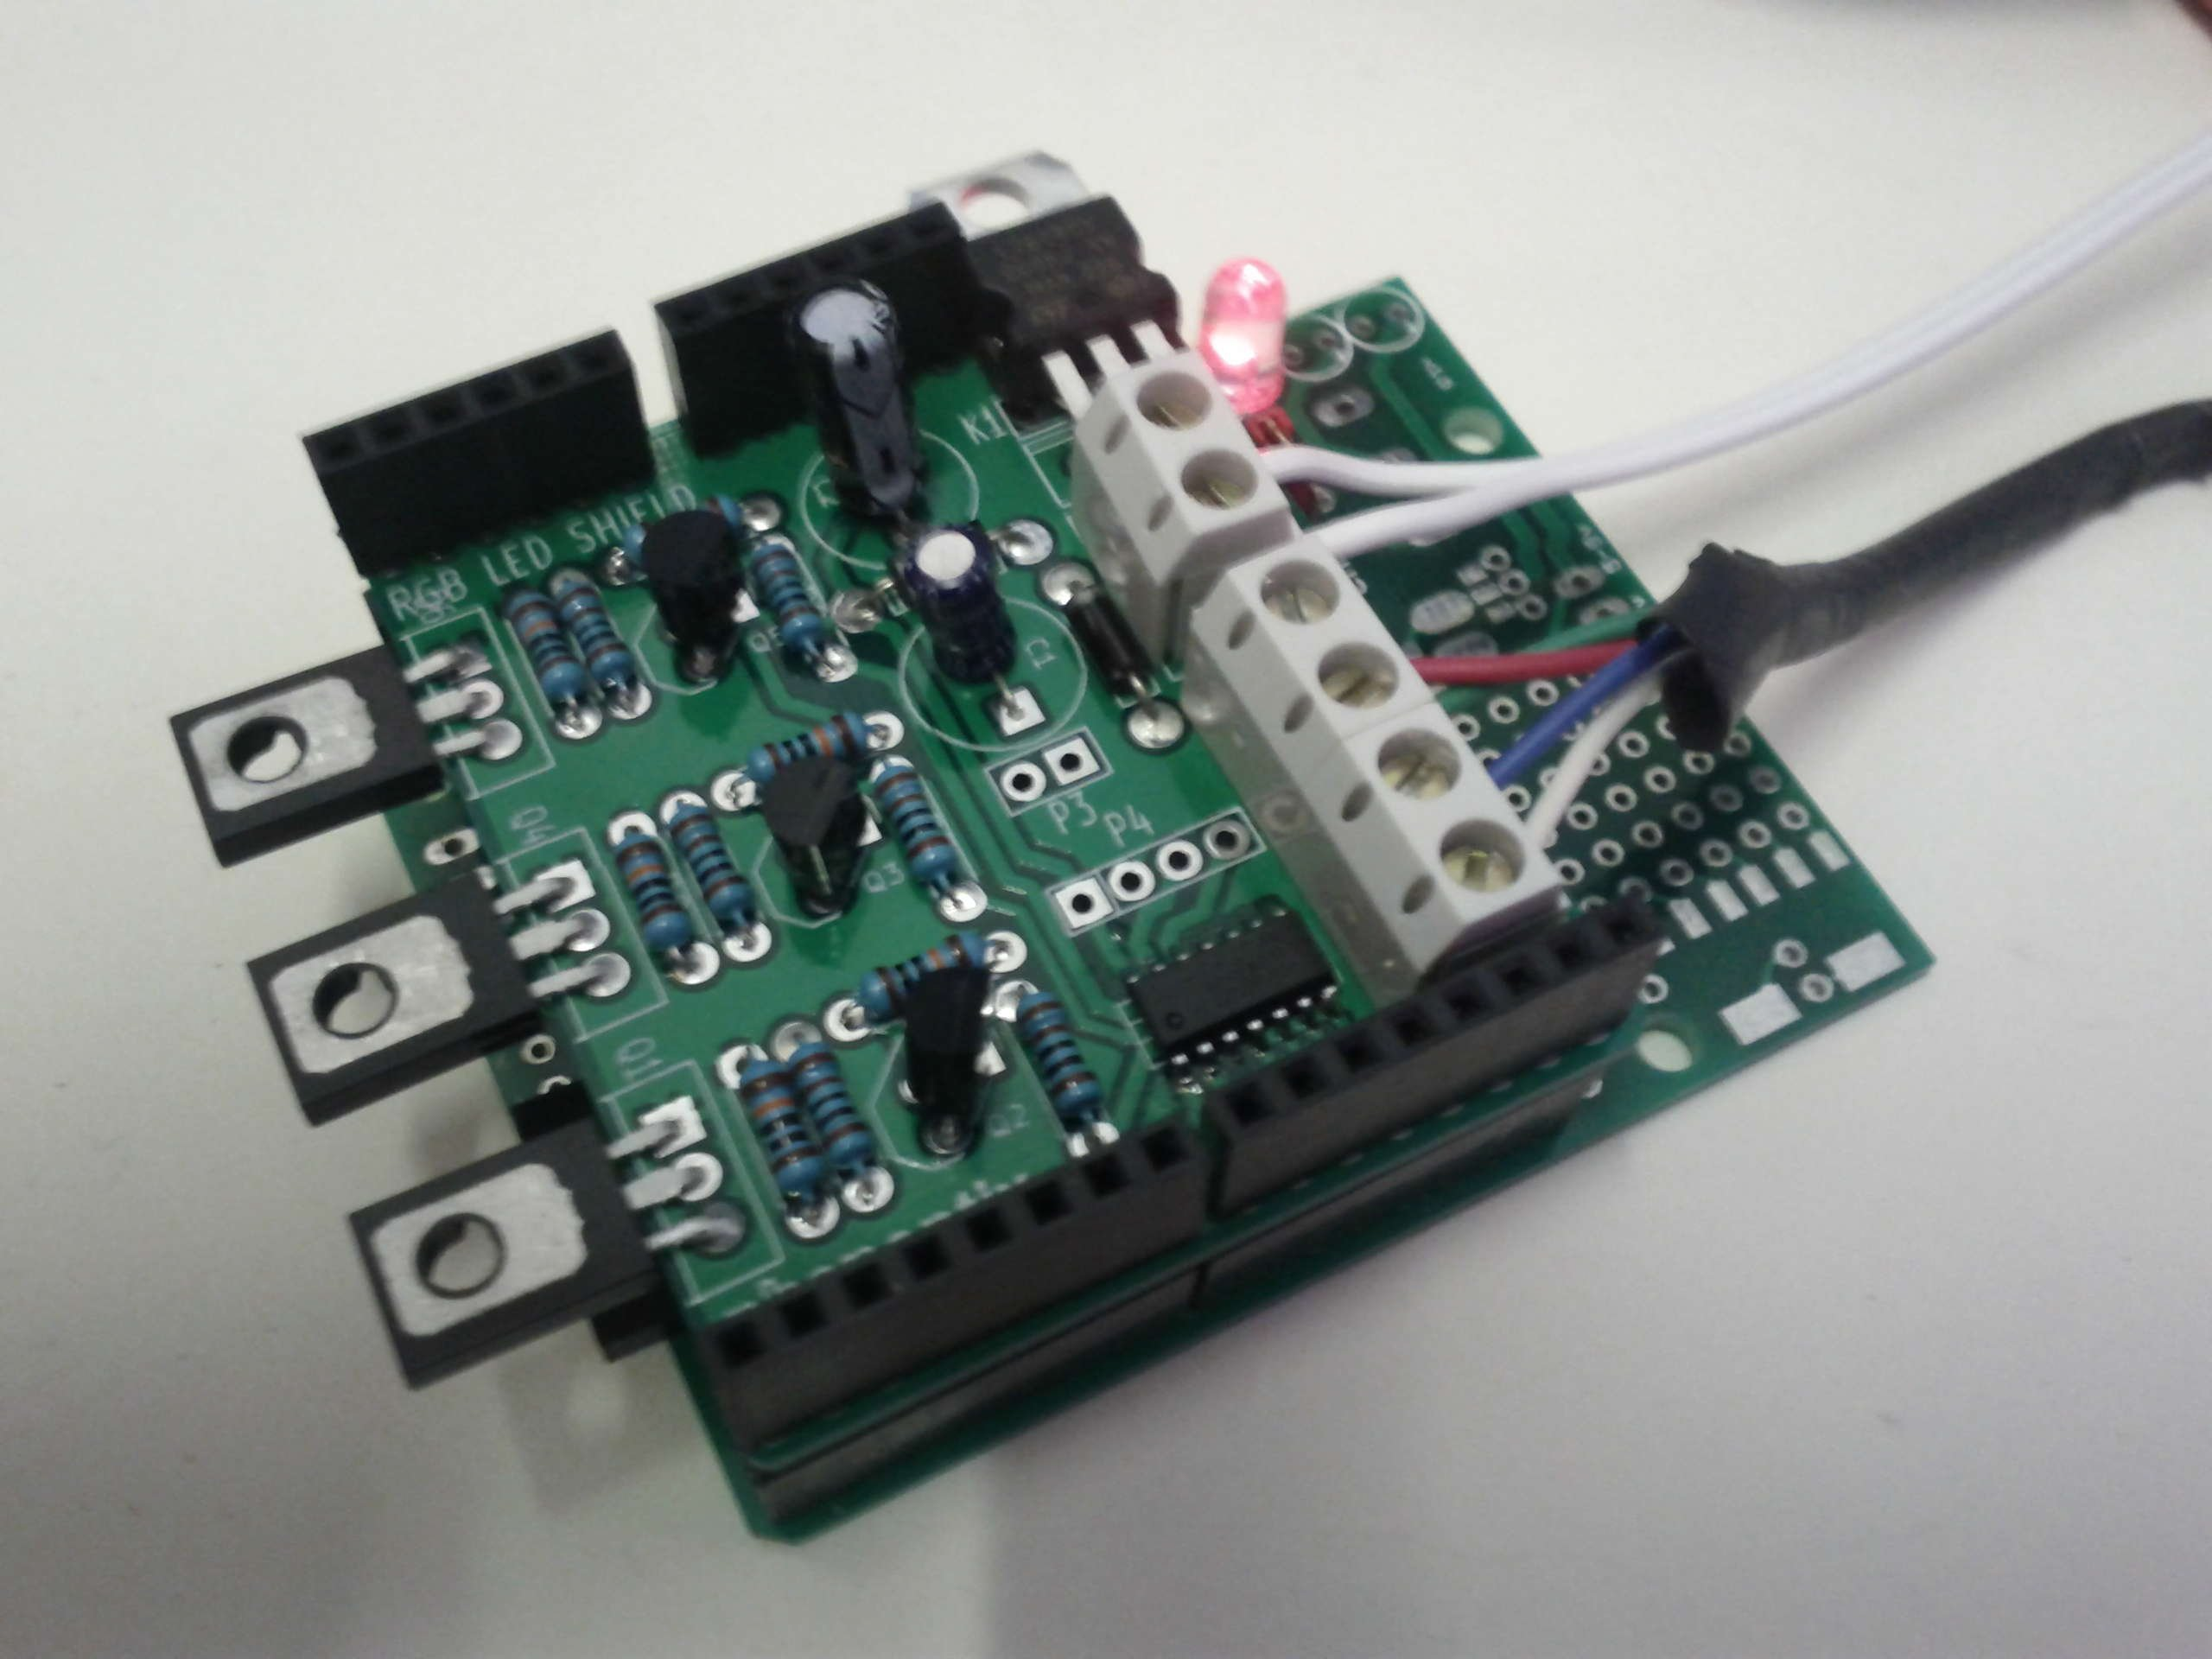 Rgb led arduino shield from reinnovation on tindie